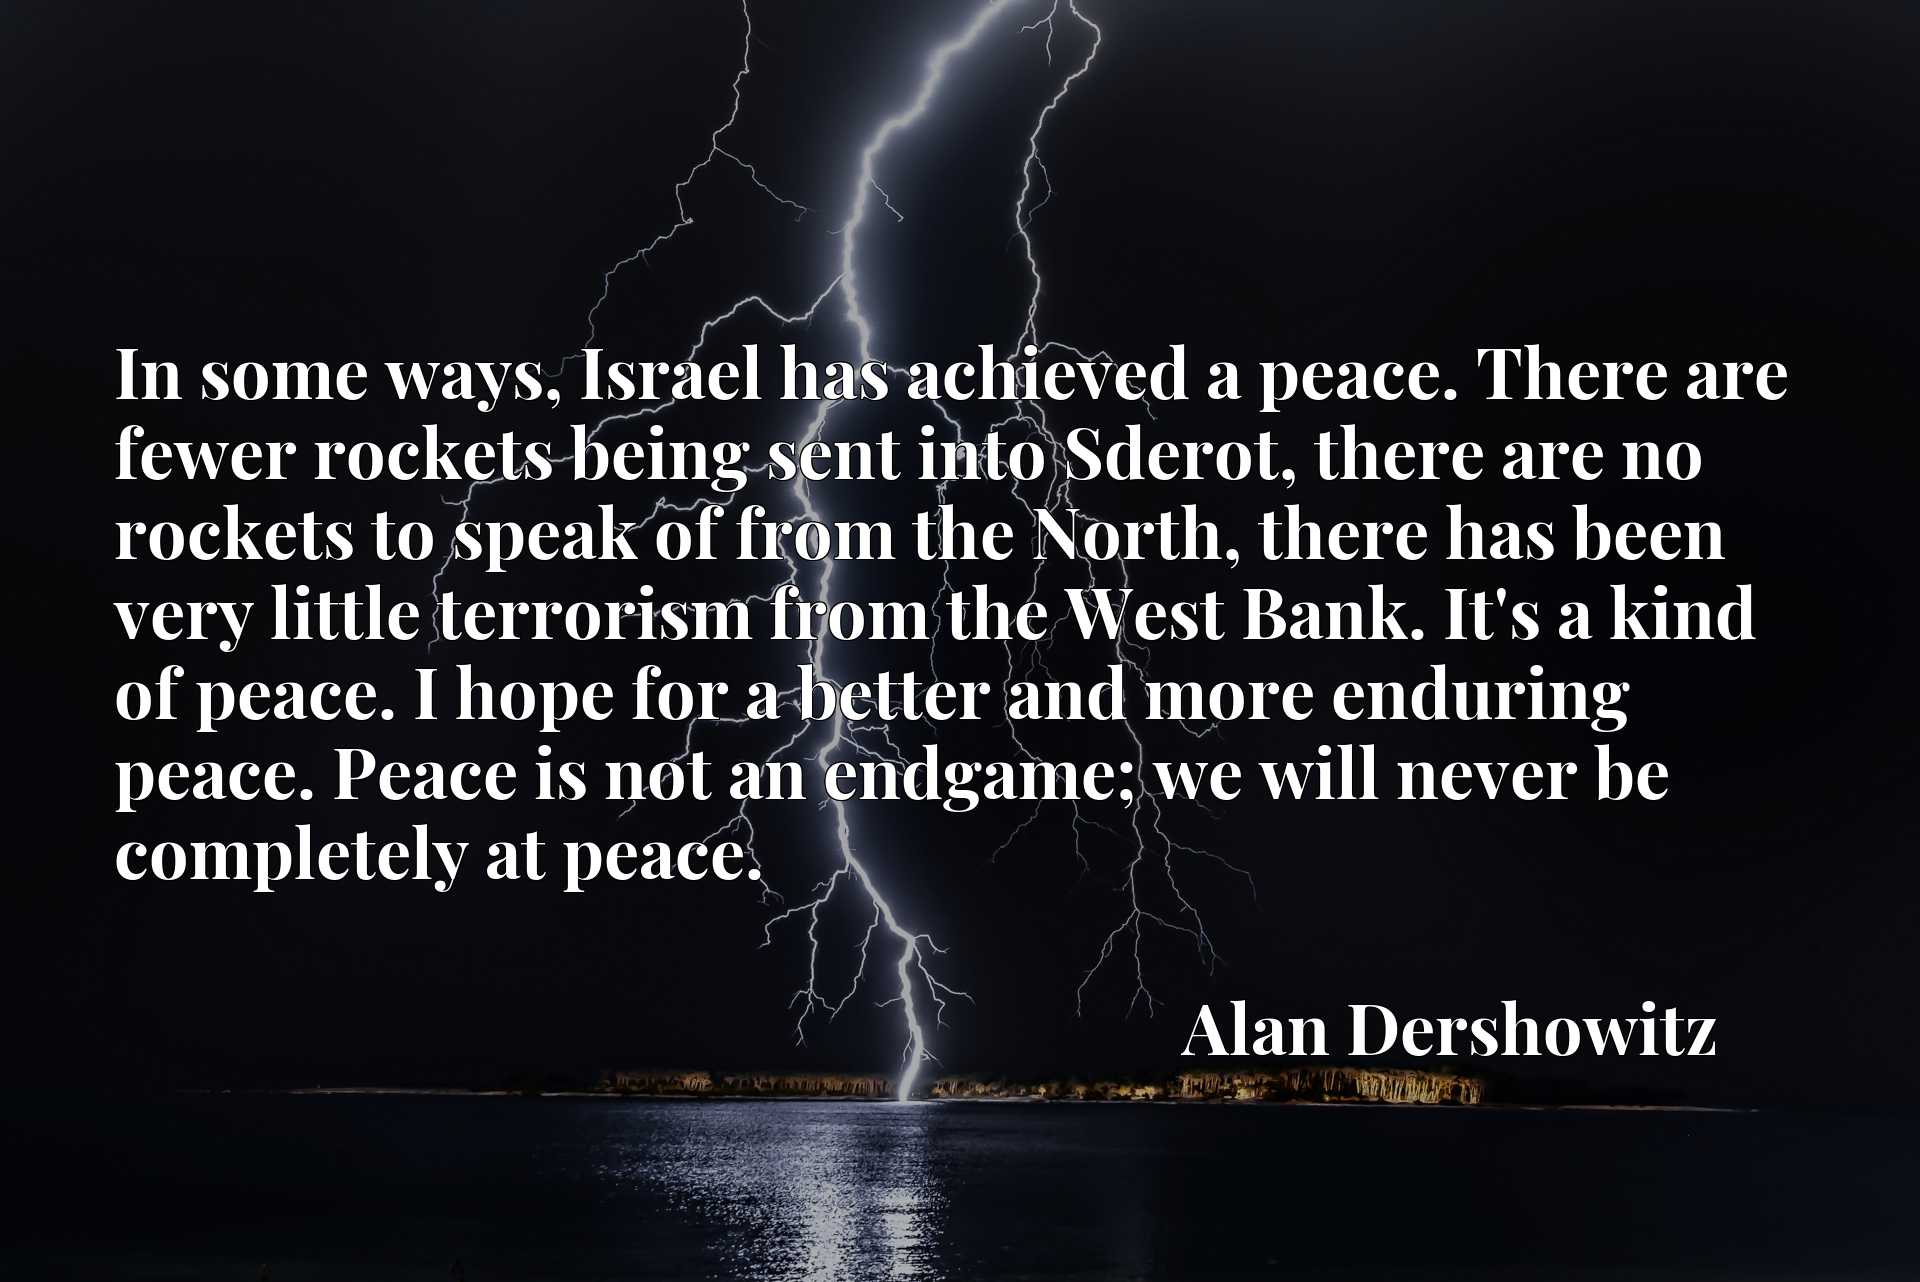 In some ways, Israel has achieved a peace. There are fewer rockets being sent into Sderot, there are no rockets to speak of from the North, there has been very little terrorism from the West Bank. It's a kind of peace. I hope for a better and more enduring peace. Peace is not an endgame; we will never be completely at peace.